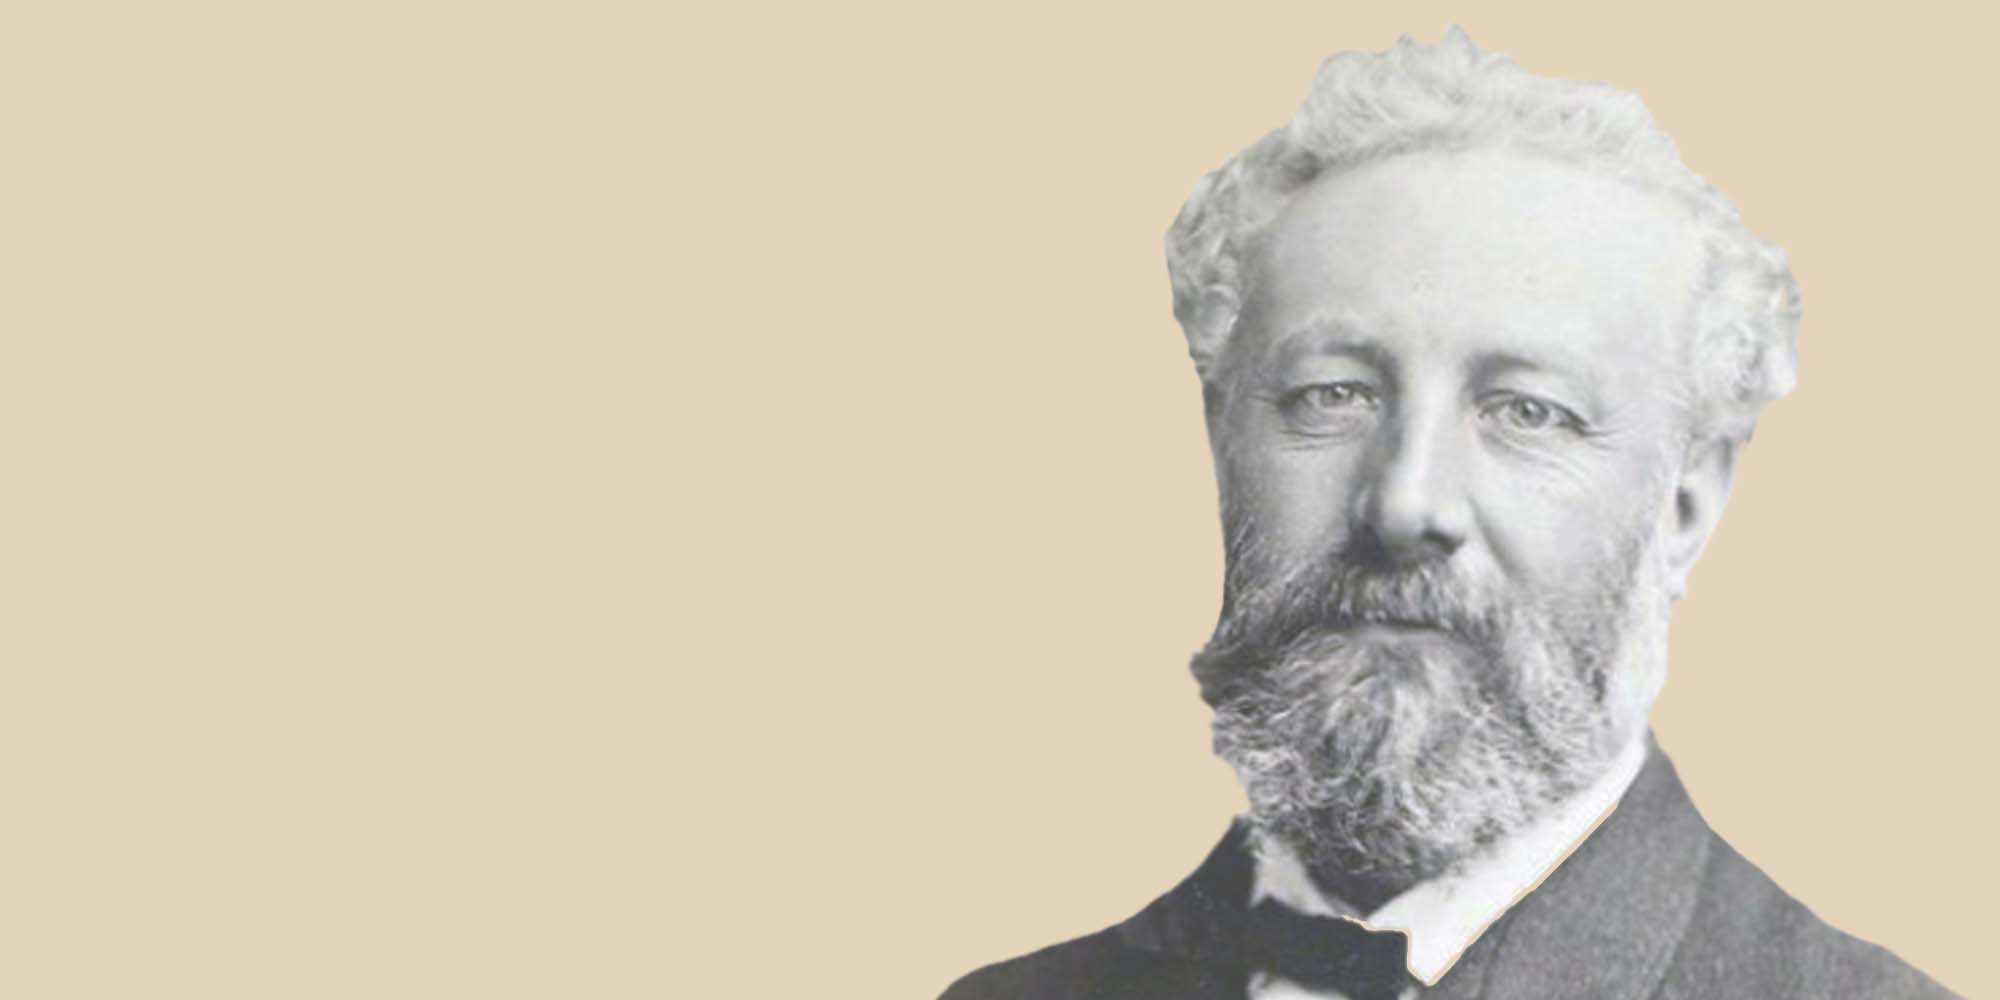 a biography and life work of jules verne french novelist Biography jules verne jules gabriel verne was a french novelist but quit the profession early in life to write for magazines and the stage.